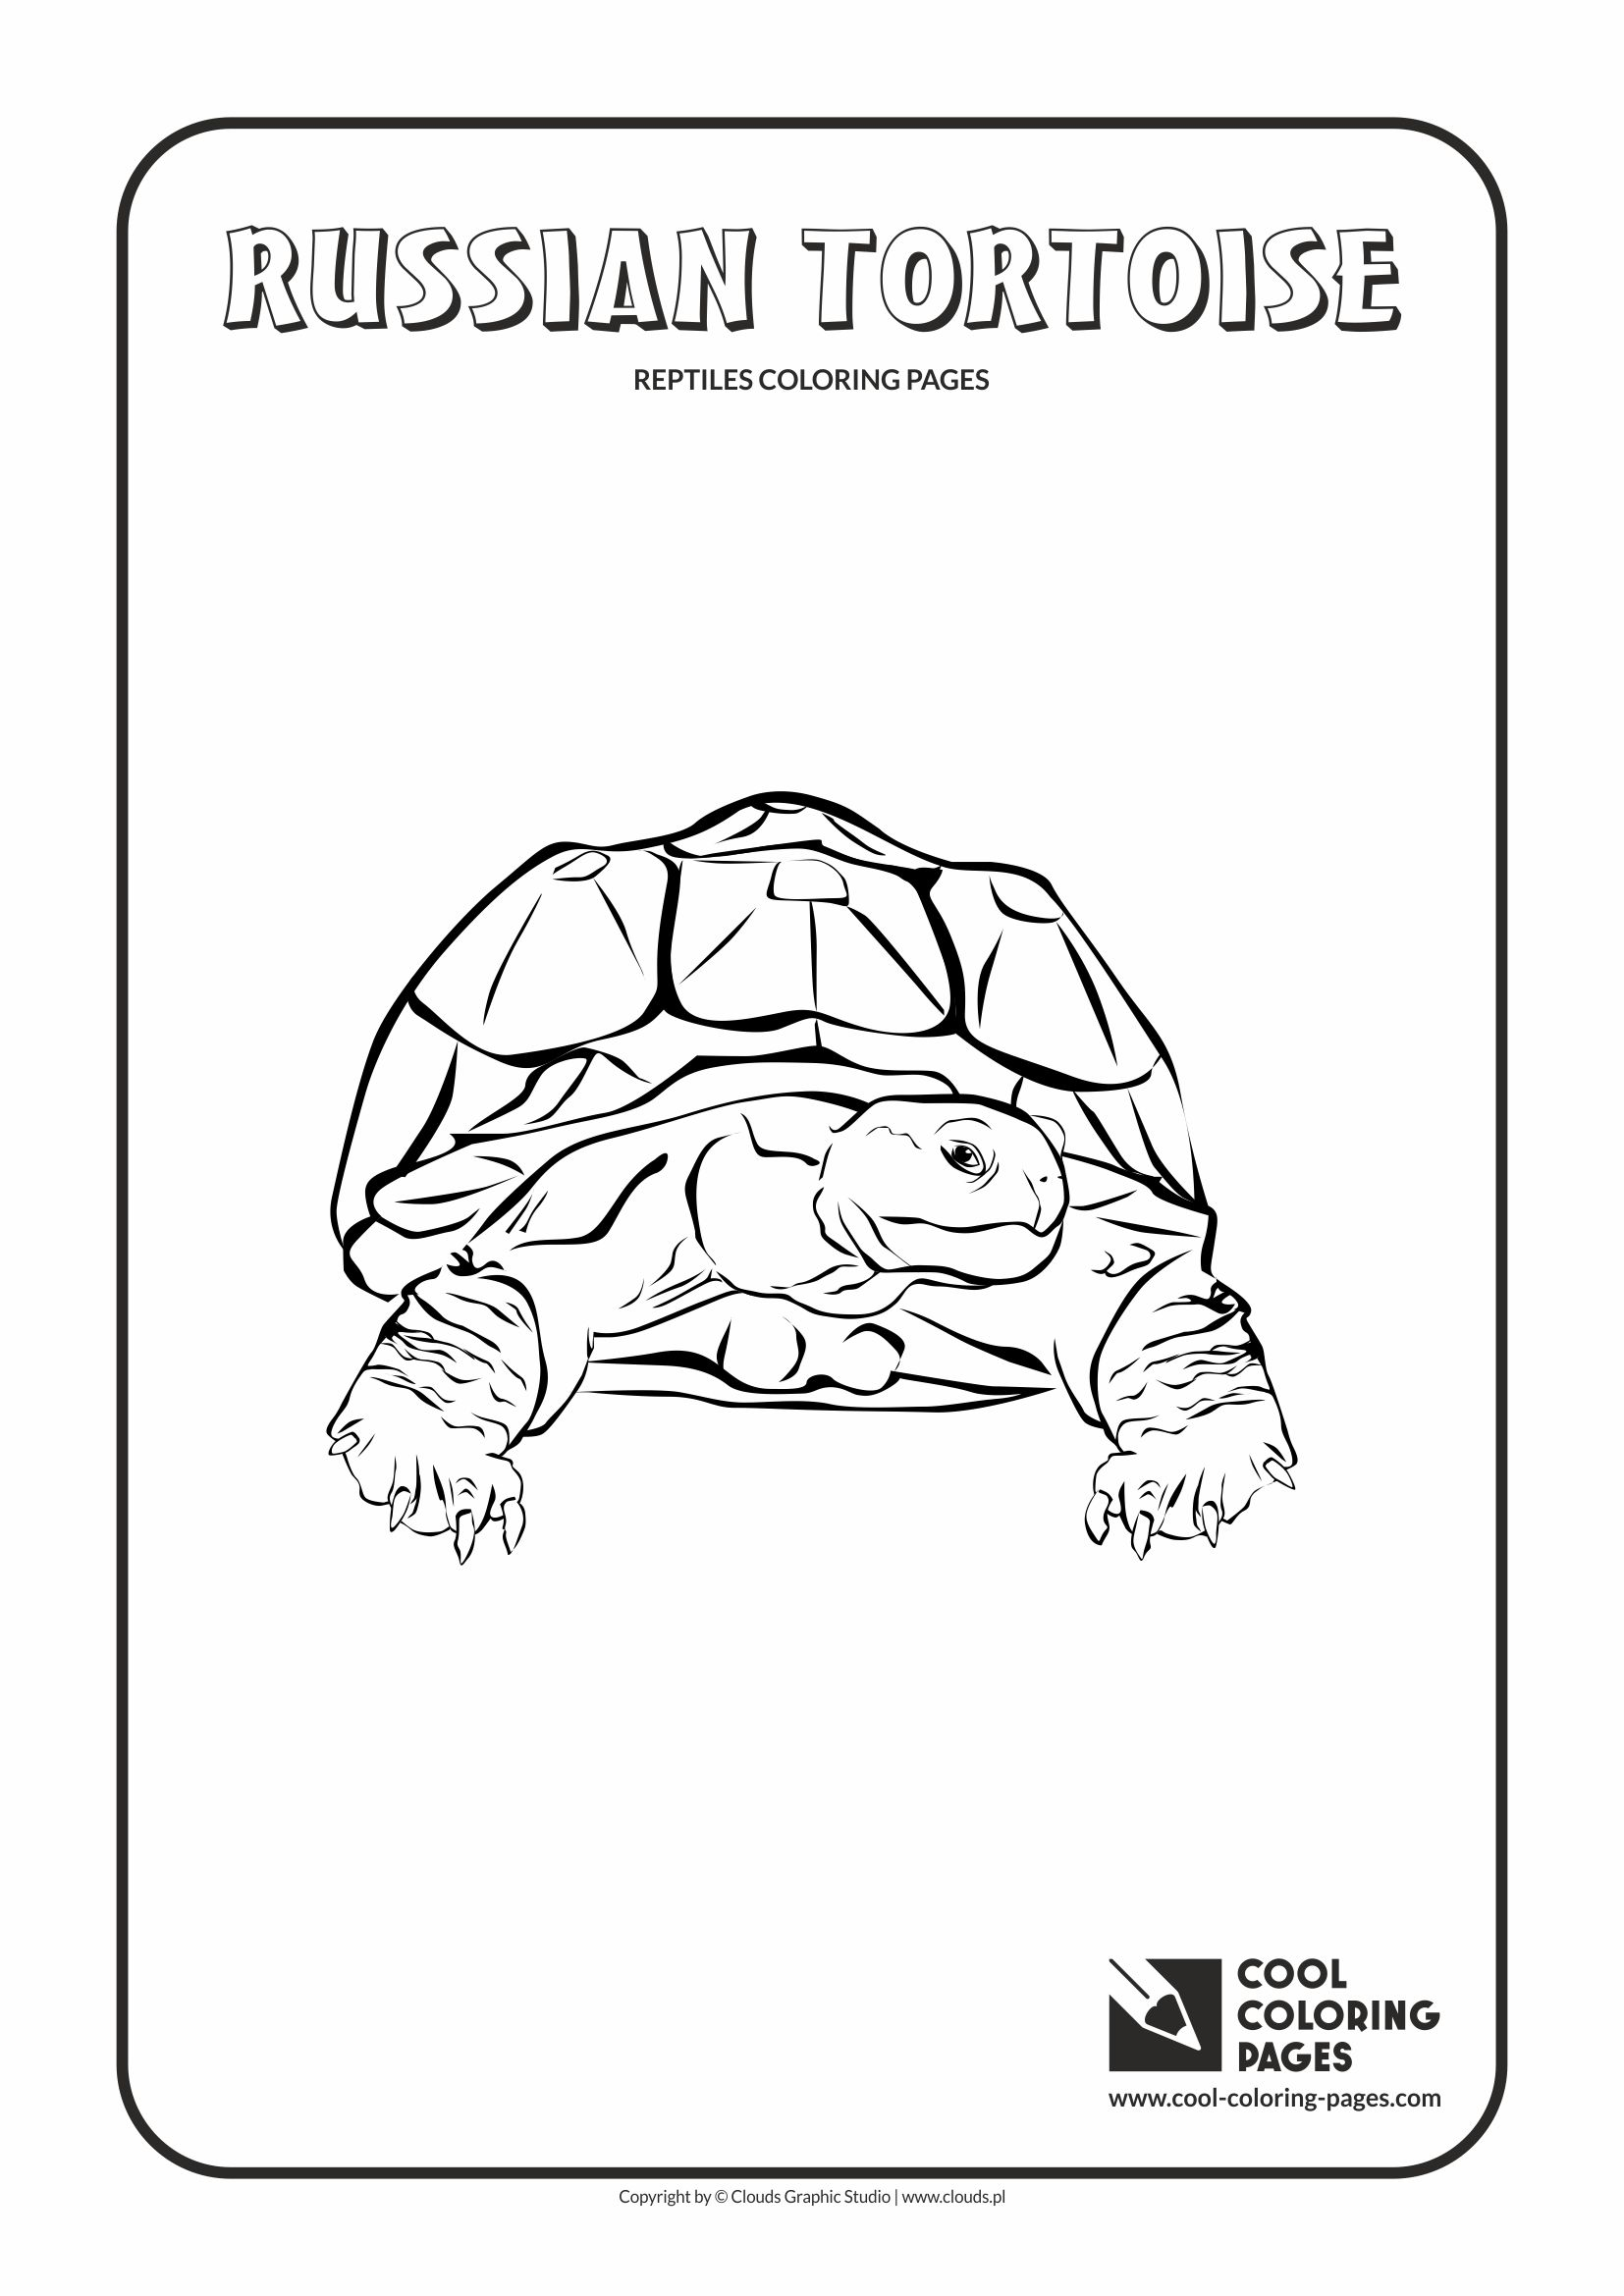 Cool Coloring Pages - Animals / Russian tortoise / Coloring page with russian tortoise